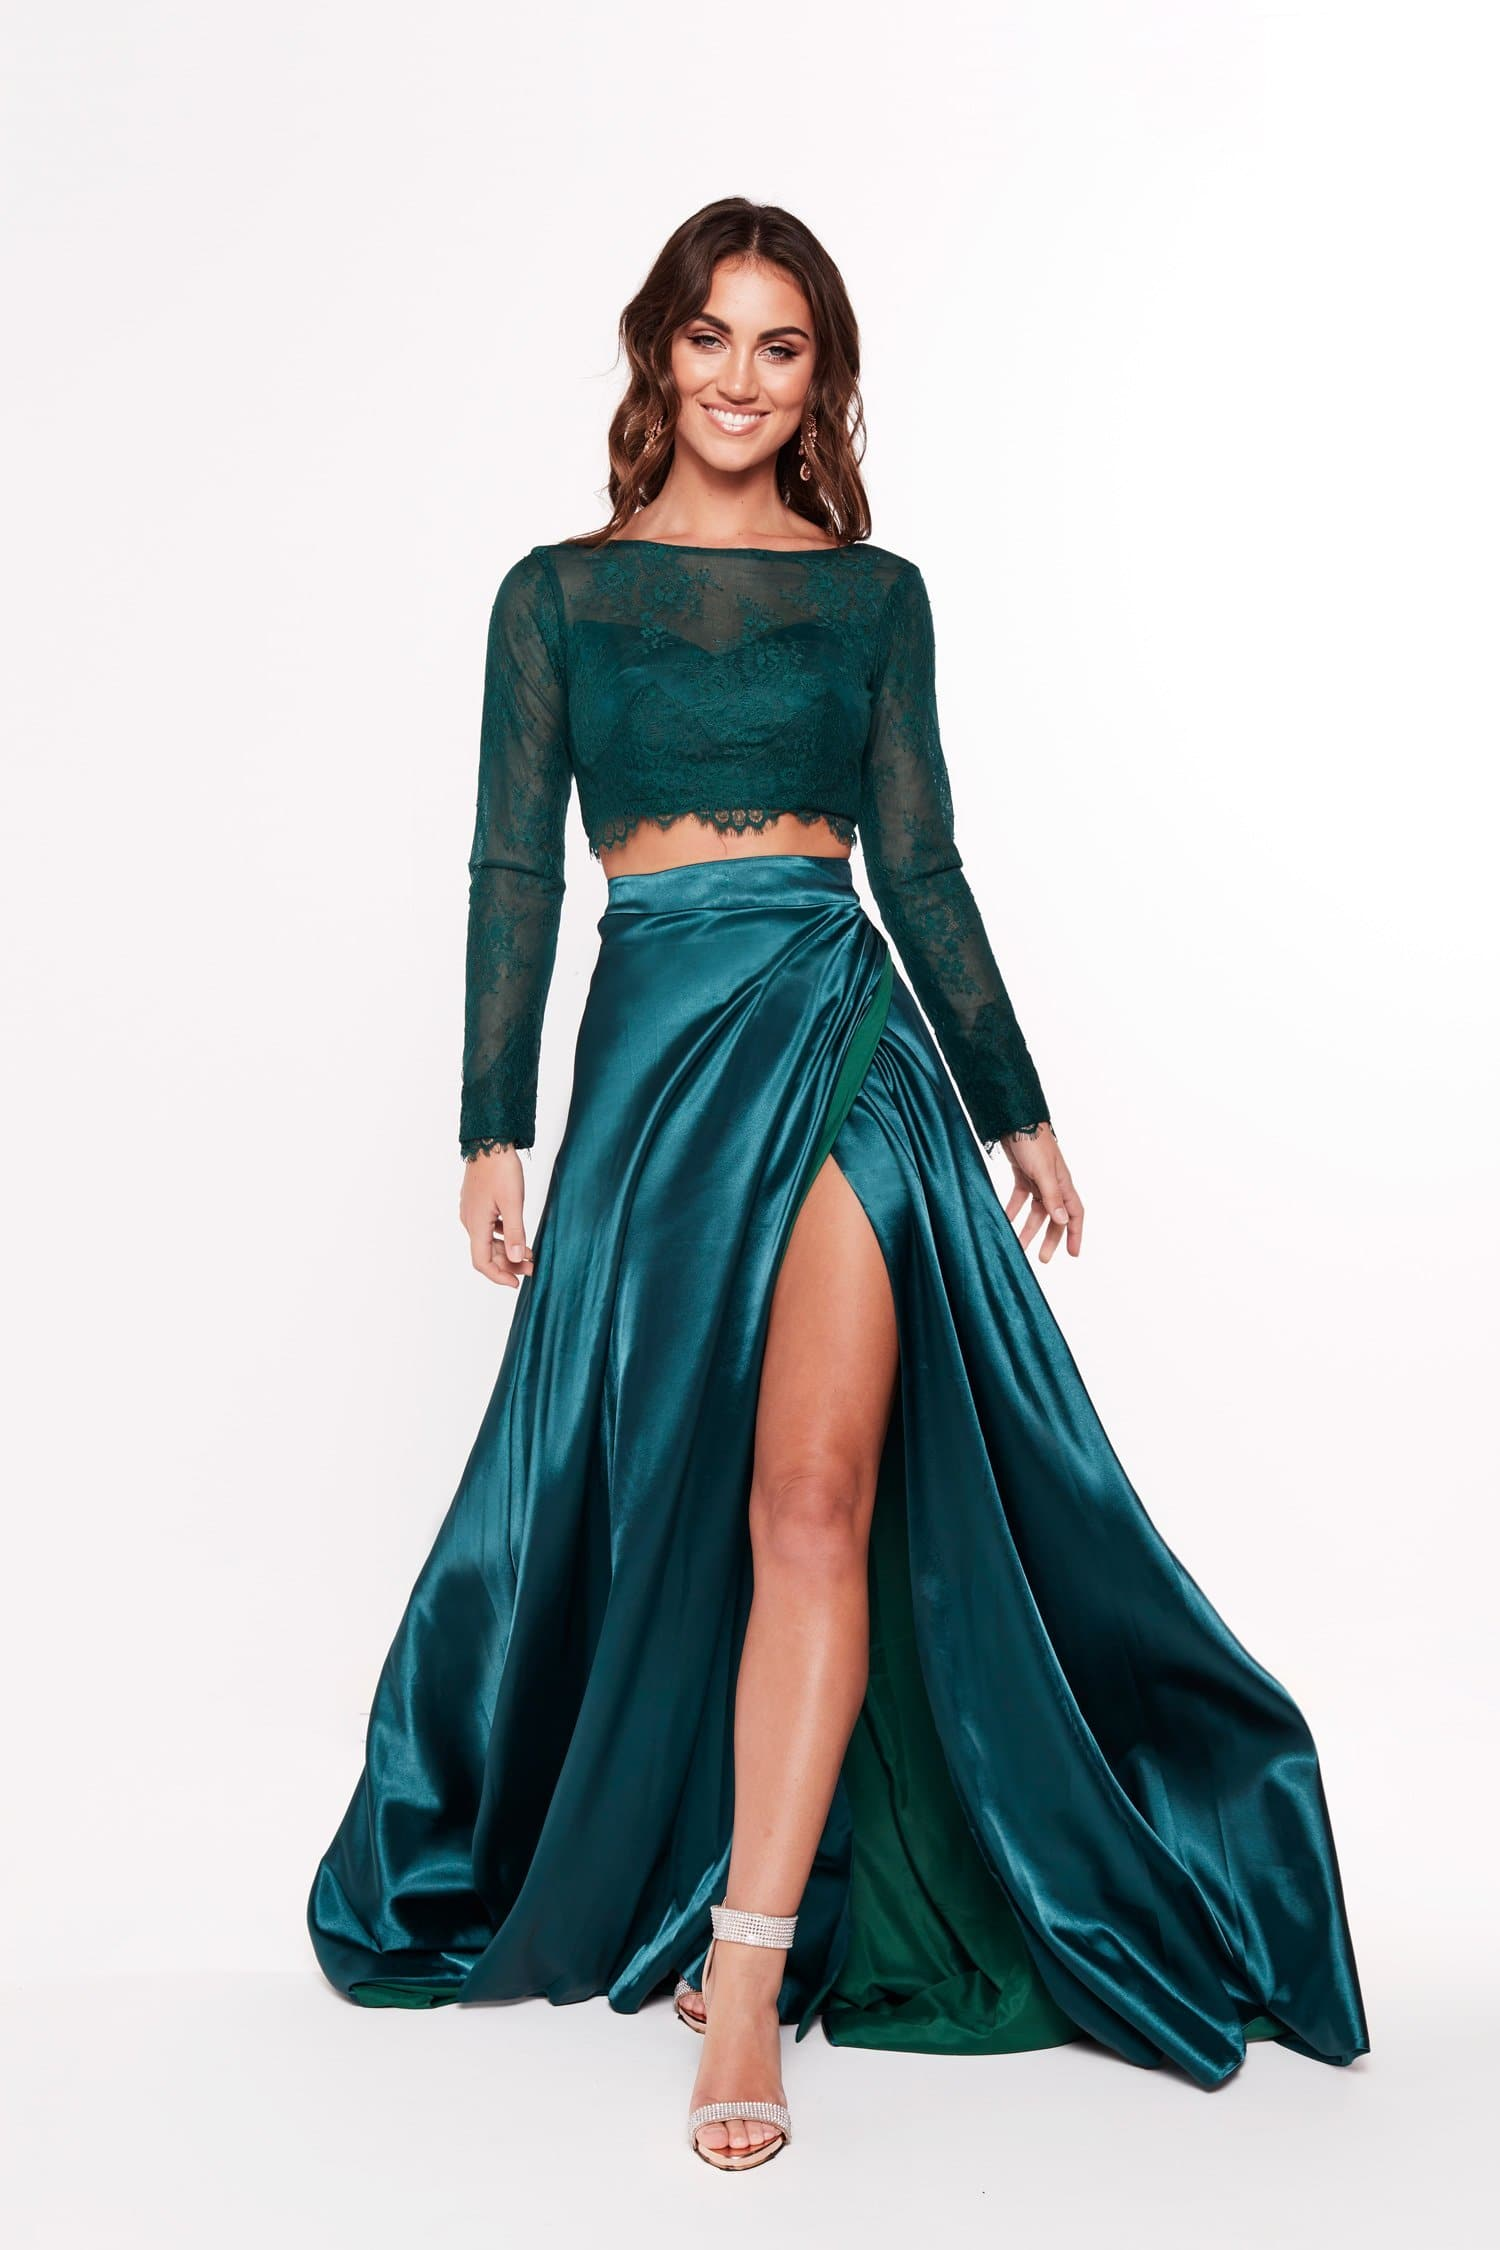 Teal lace top and a line skirt prom dress